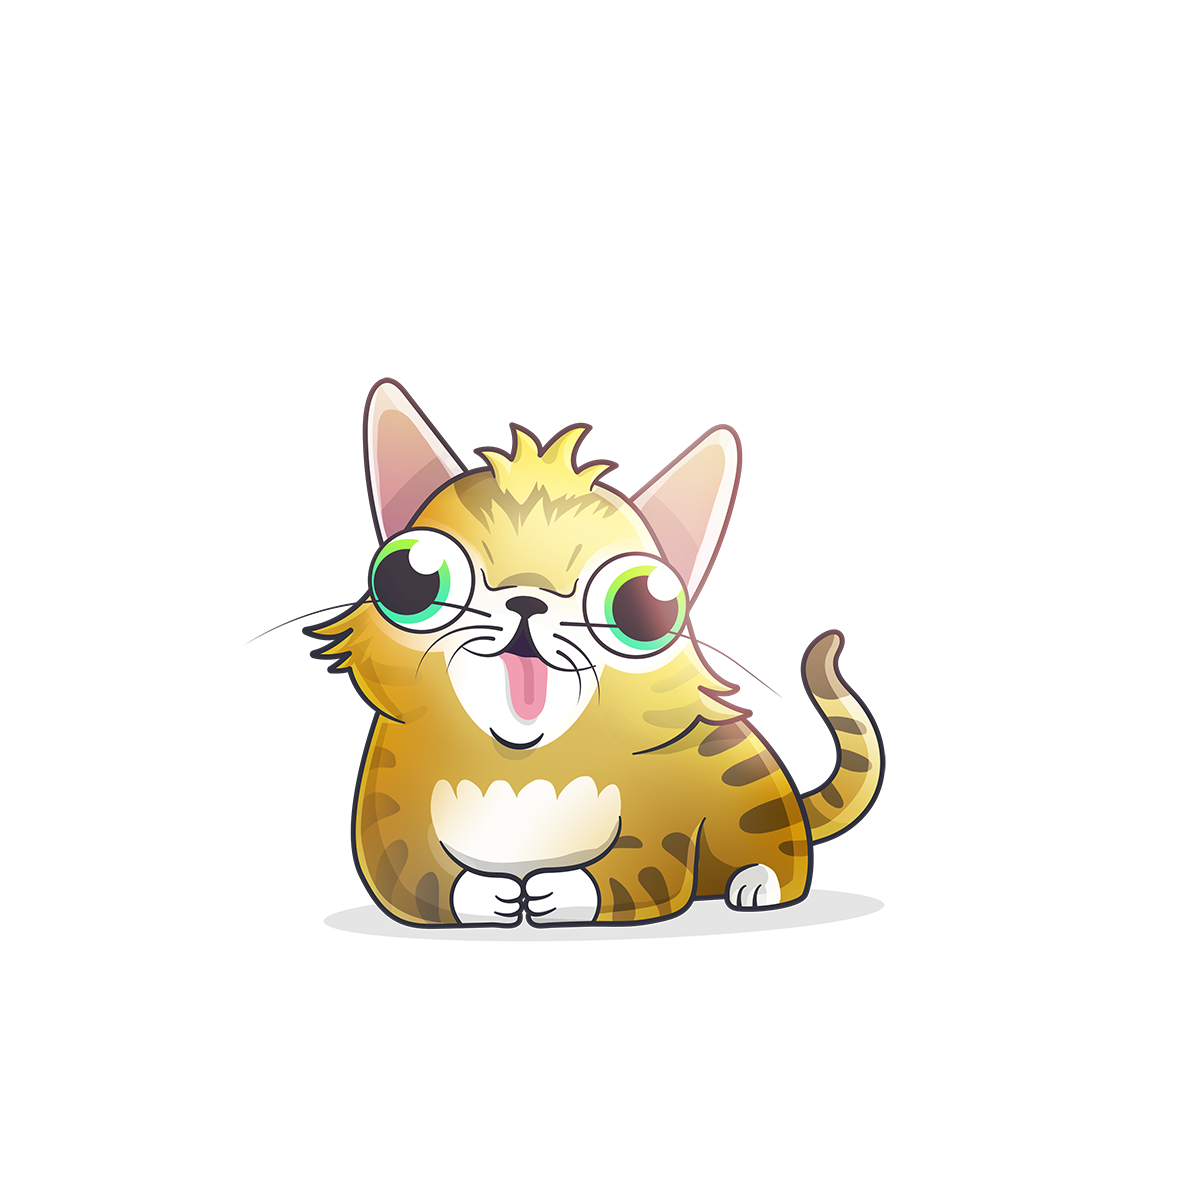 cryptokitty #1129945